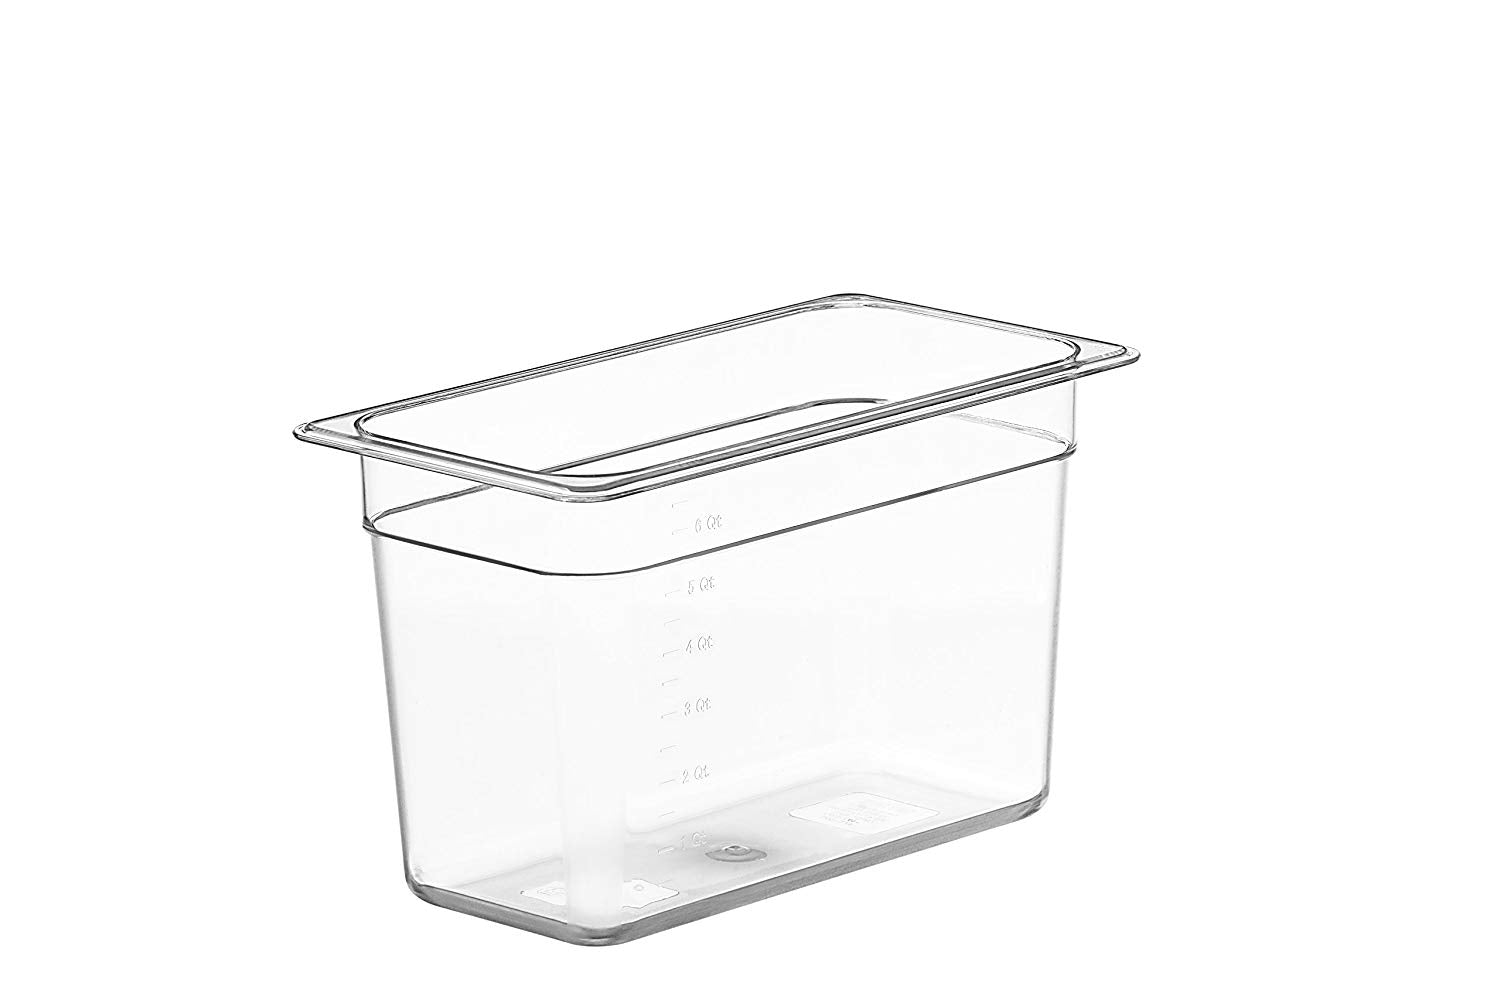 LIPAVI Sous Vide Container Model C5 – 1.75 Gallon, 12.7 X 7 Inch, Height 8 Inch. Strong, Clear Polycarbonate. Matching Lids for Anova, Joule and more. Matching Sous Vide Rack LIPAVI Model L5